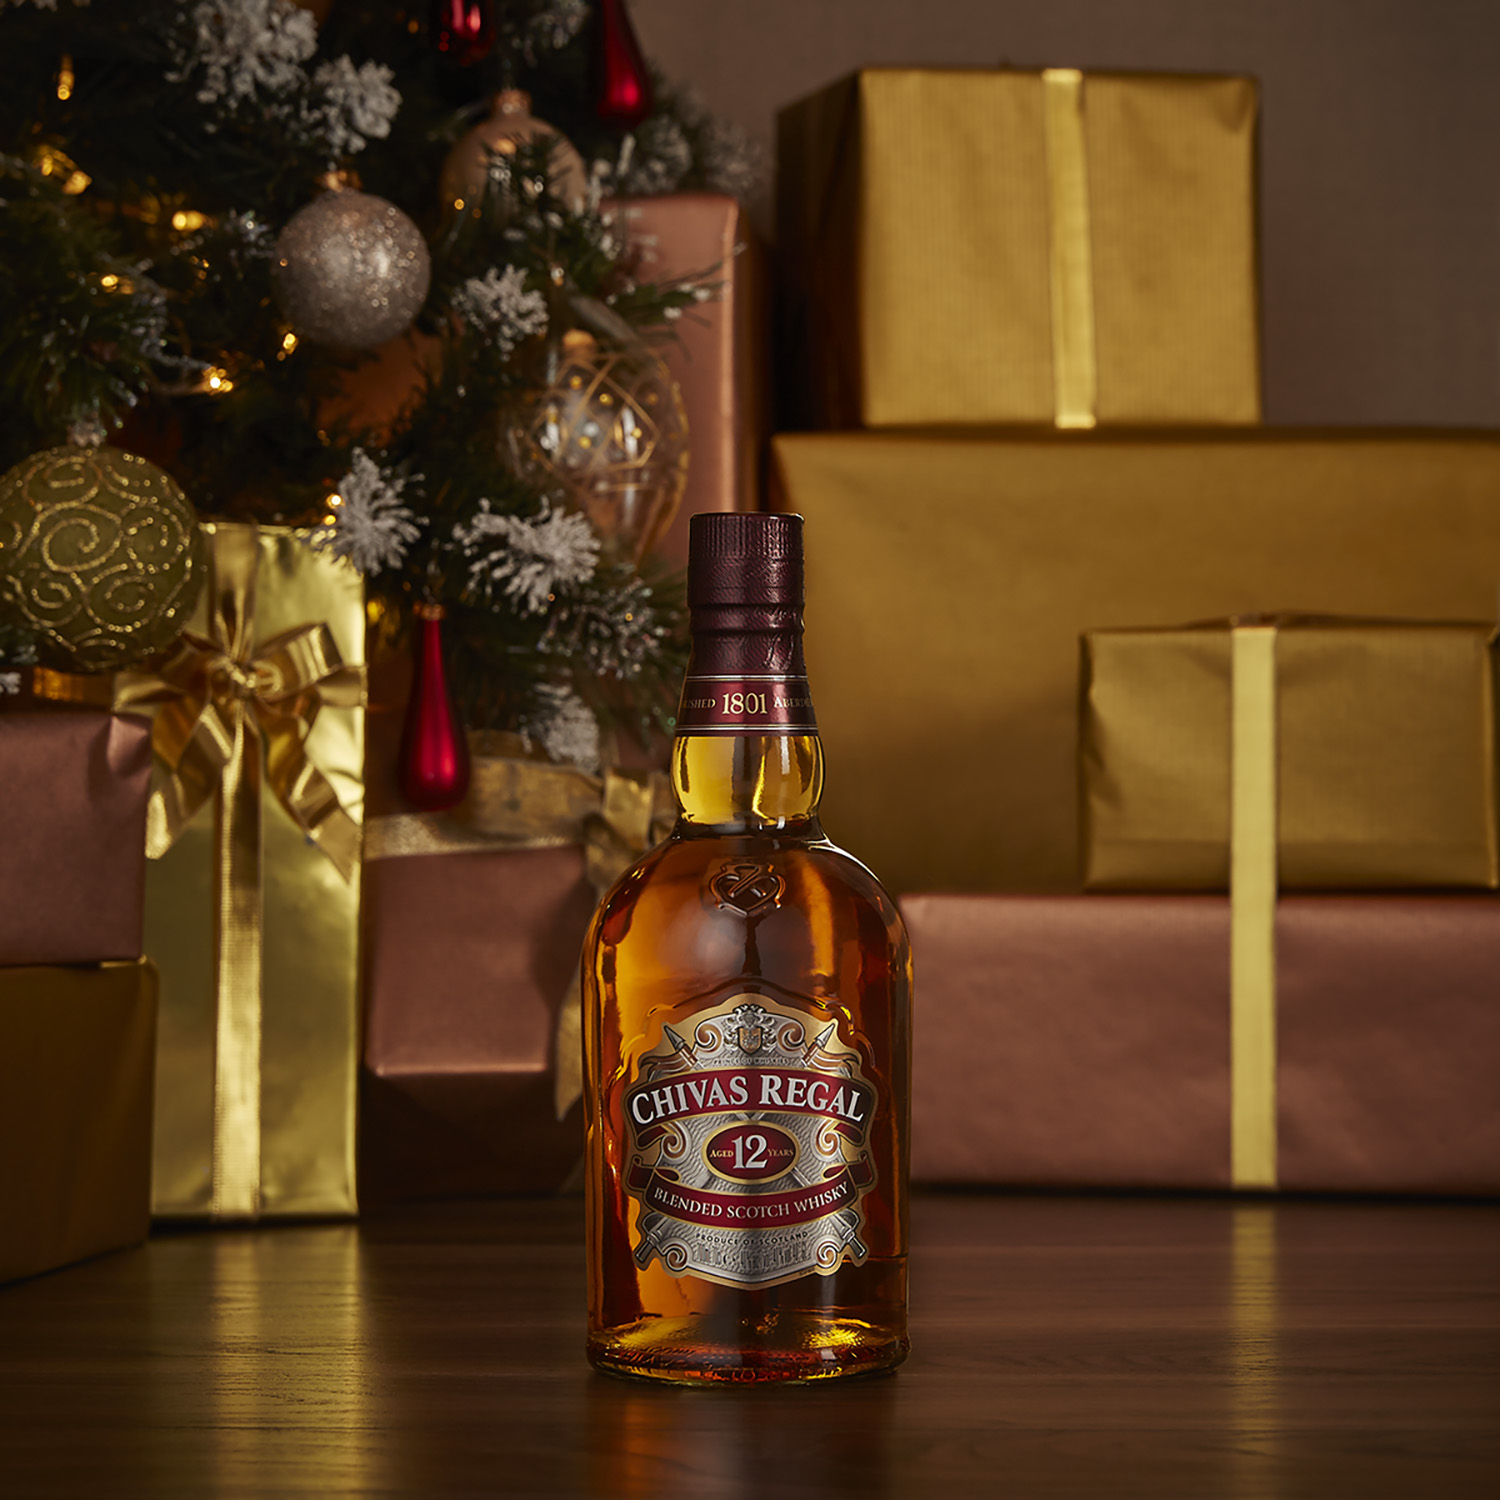 Approach_Retouch_London_chivasregal3